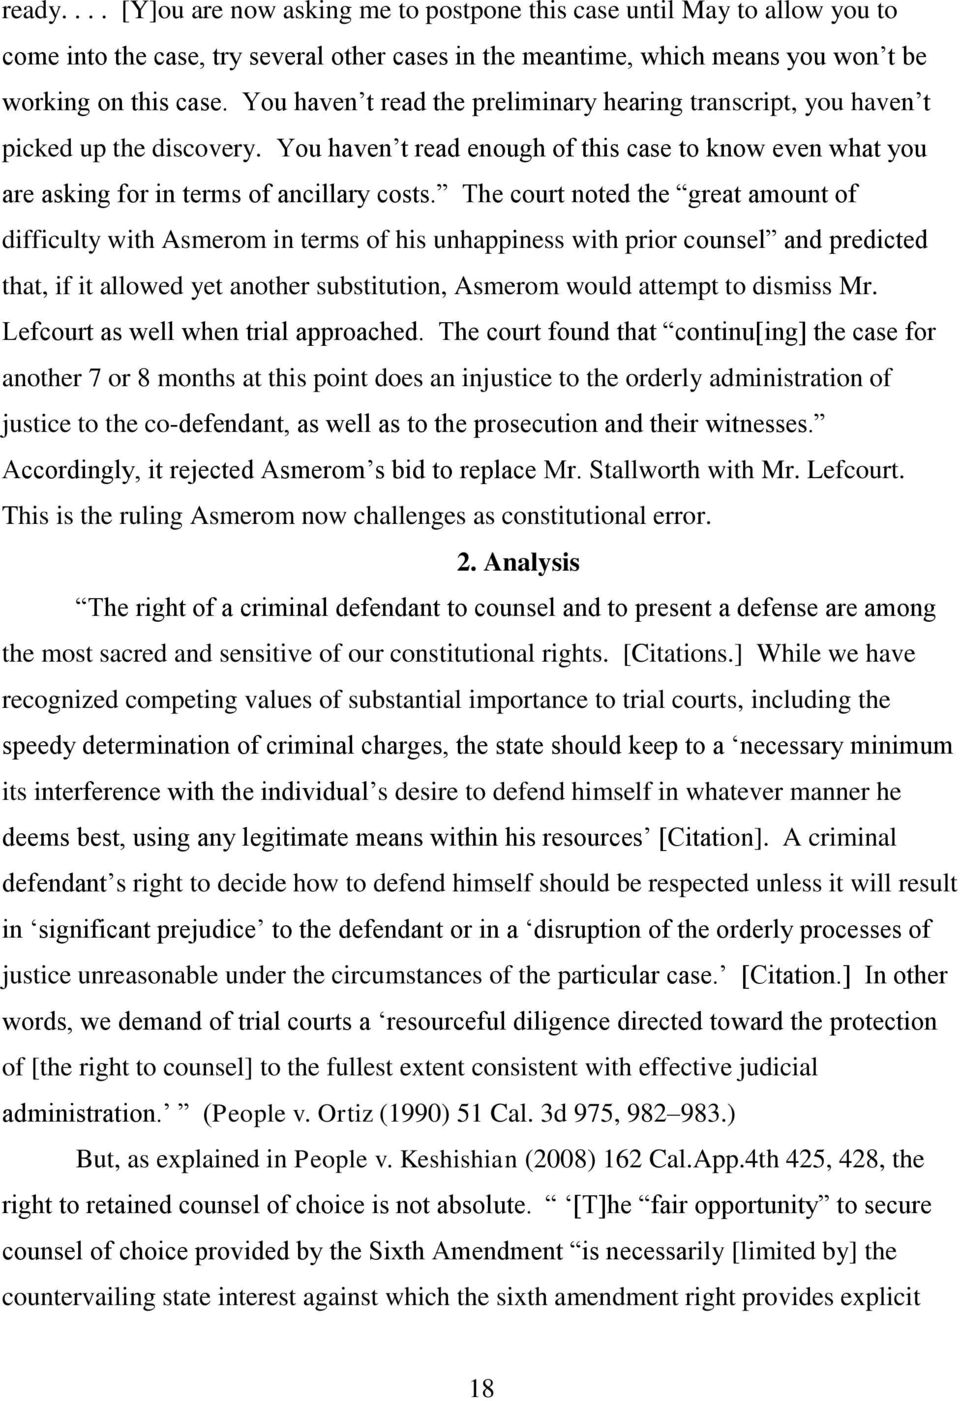 The court noted the great amount of difficulty with Asmerom in terms of his unhappiness with prior counsel and predicted that, if it allowed yet another substitution, Asmerom would attempt to dismiss